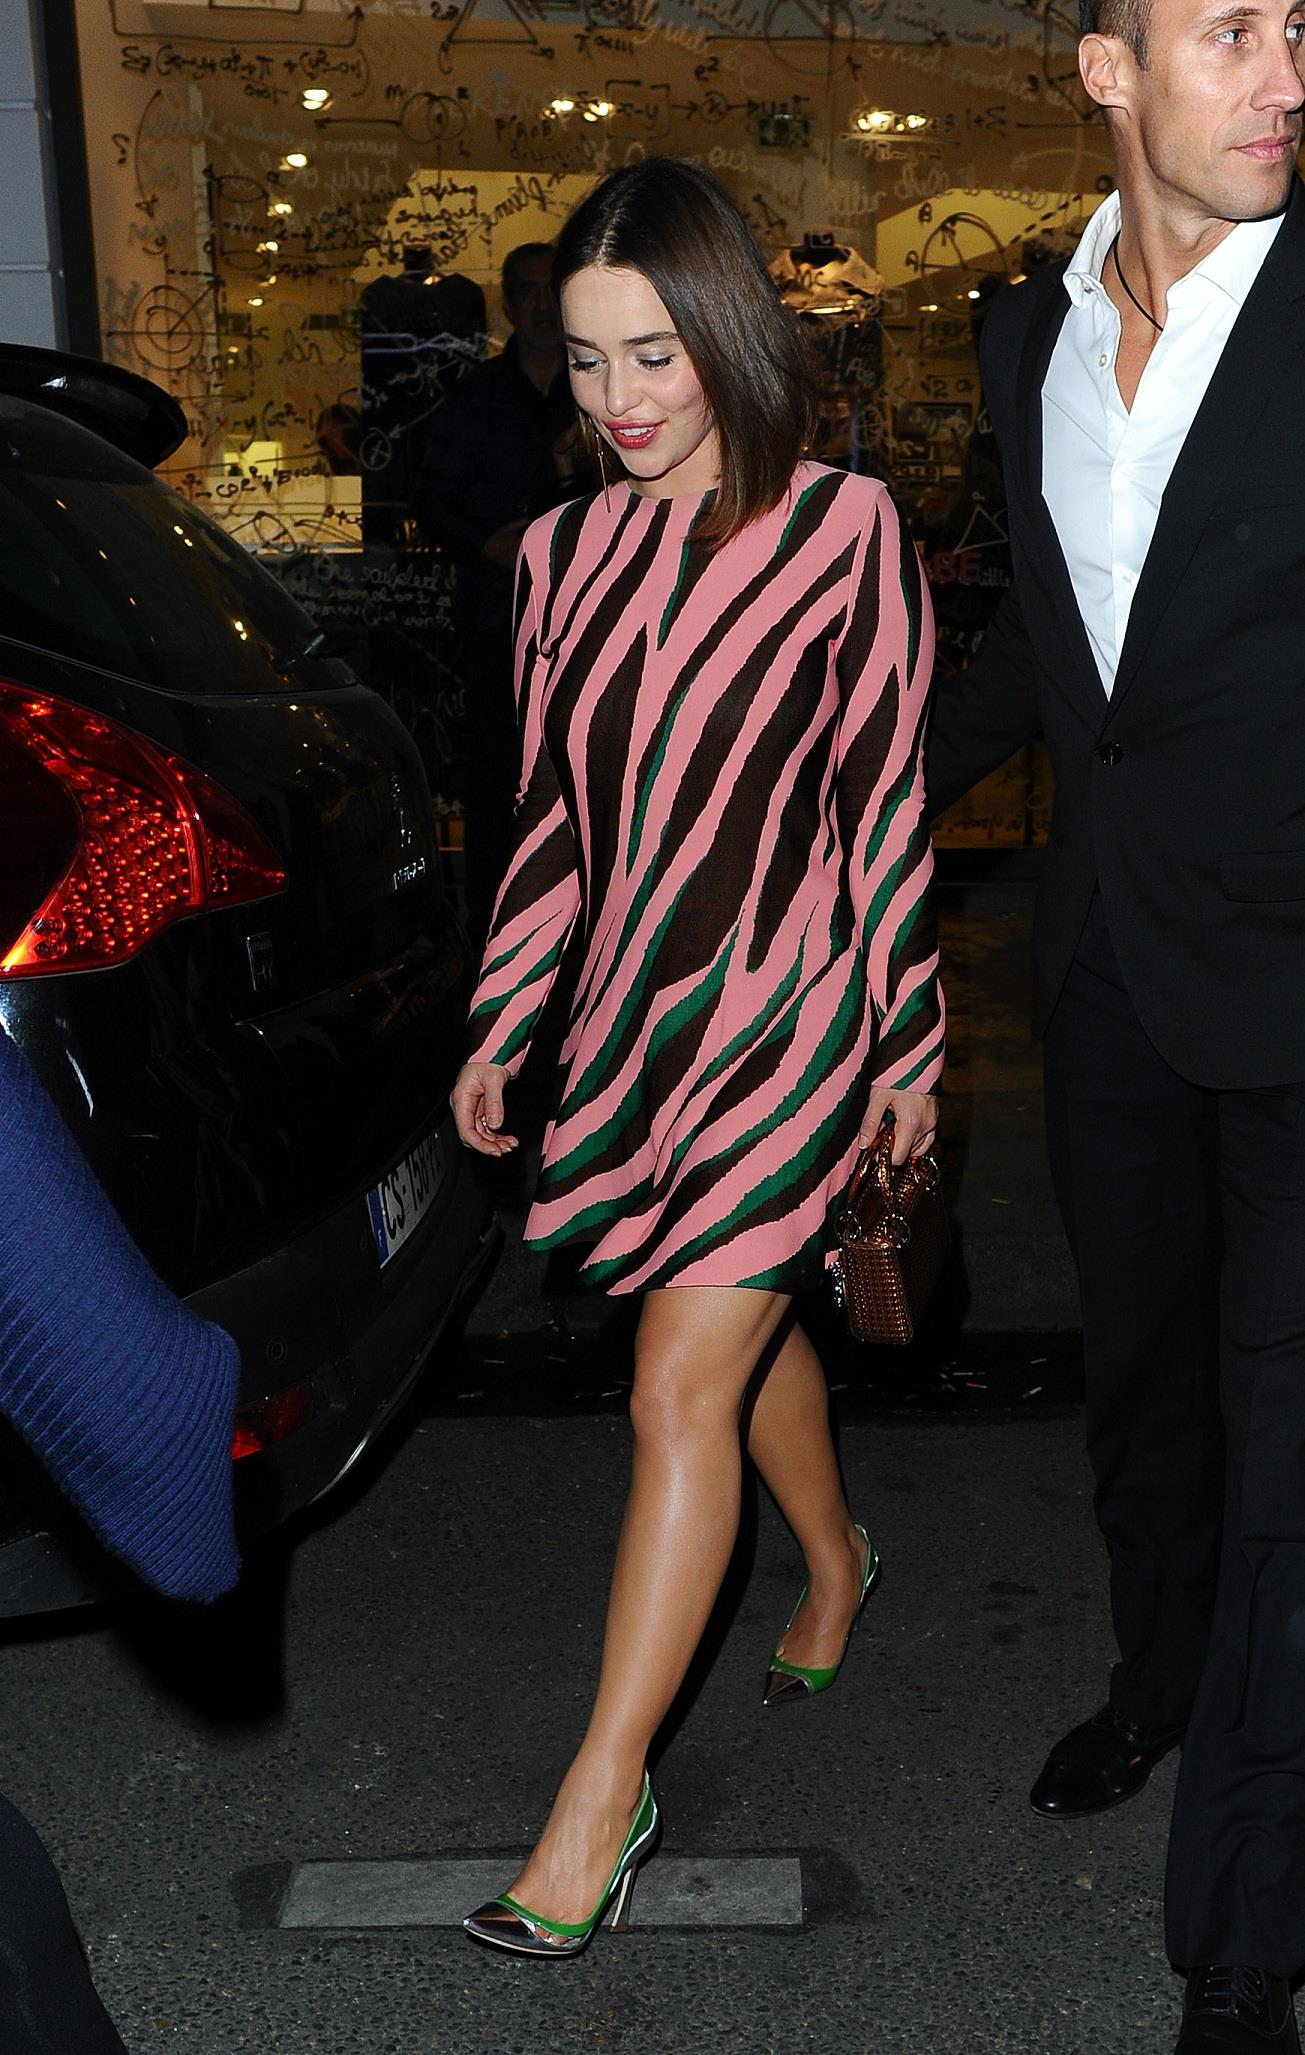 16 Hot EMILIA CLARKE Pics Cute n Leggy Colette Store Paris